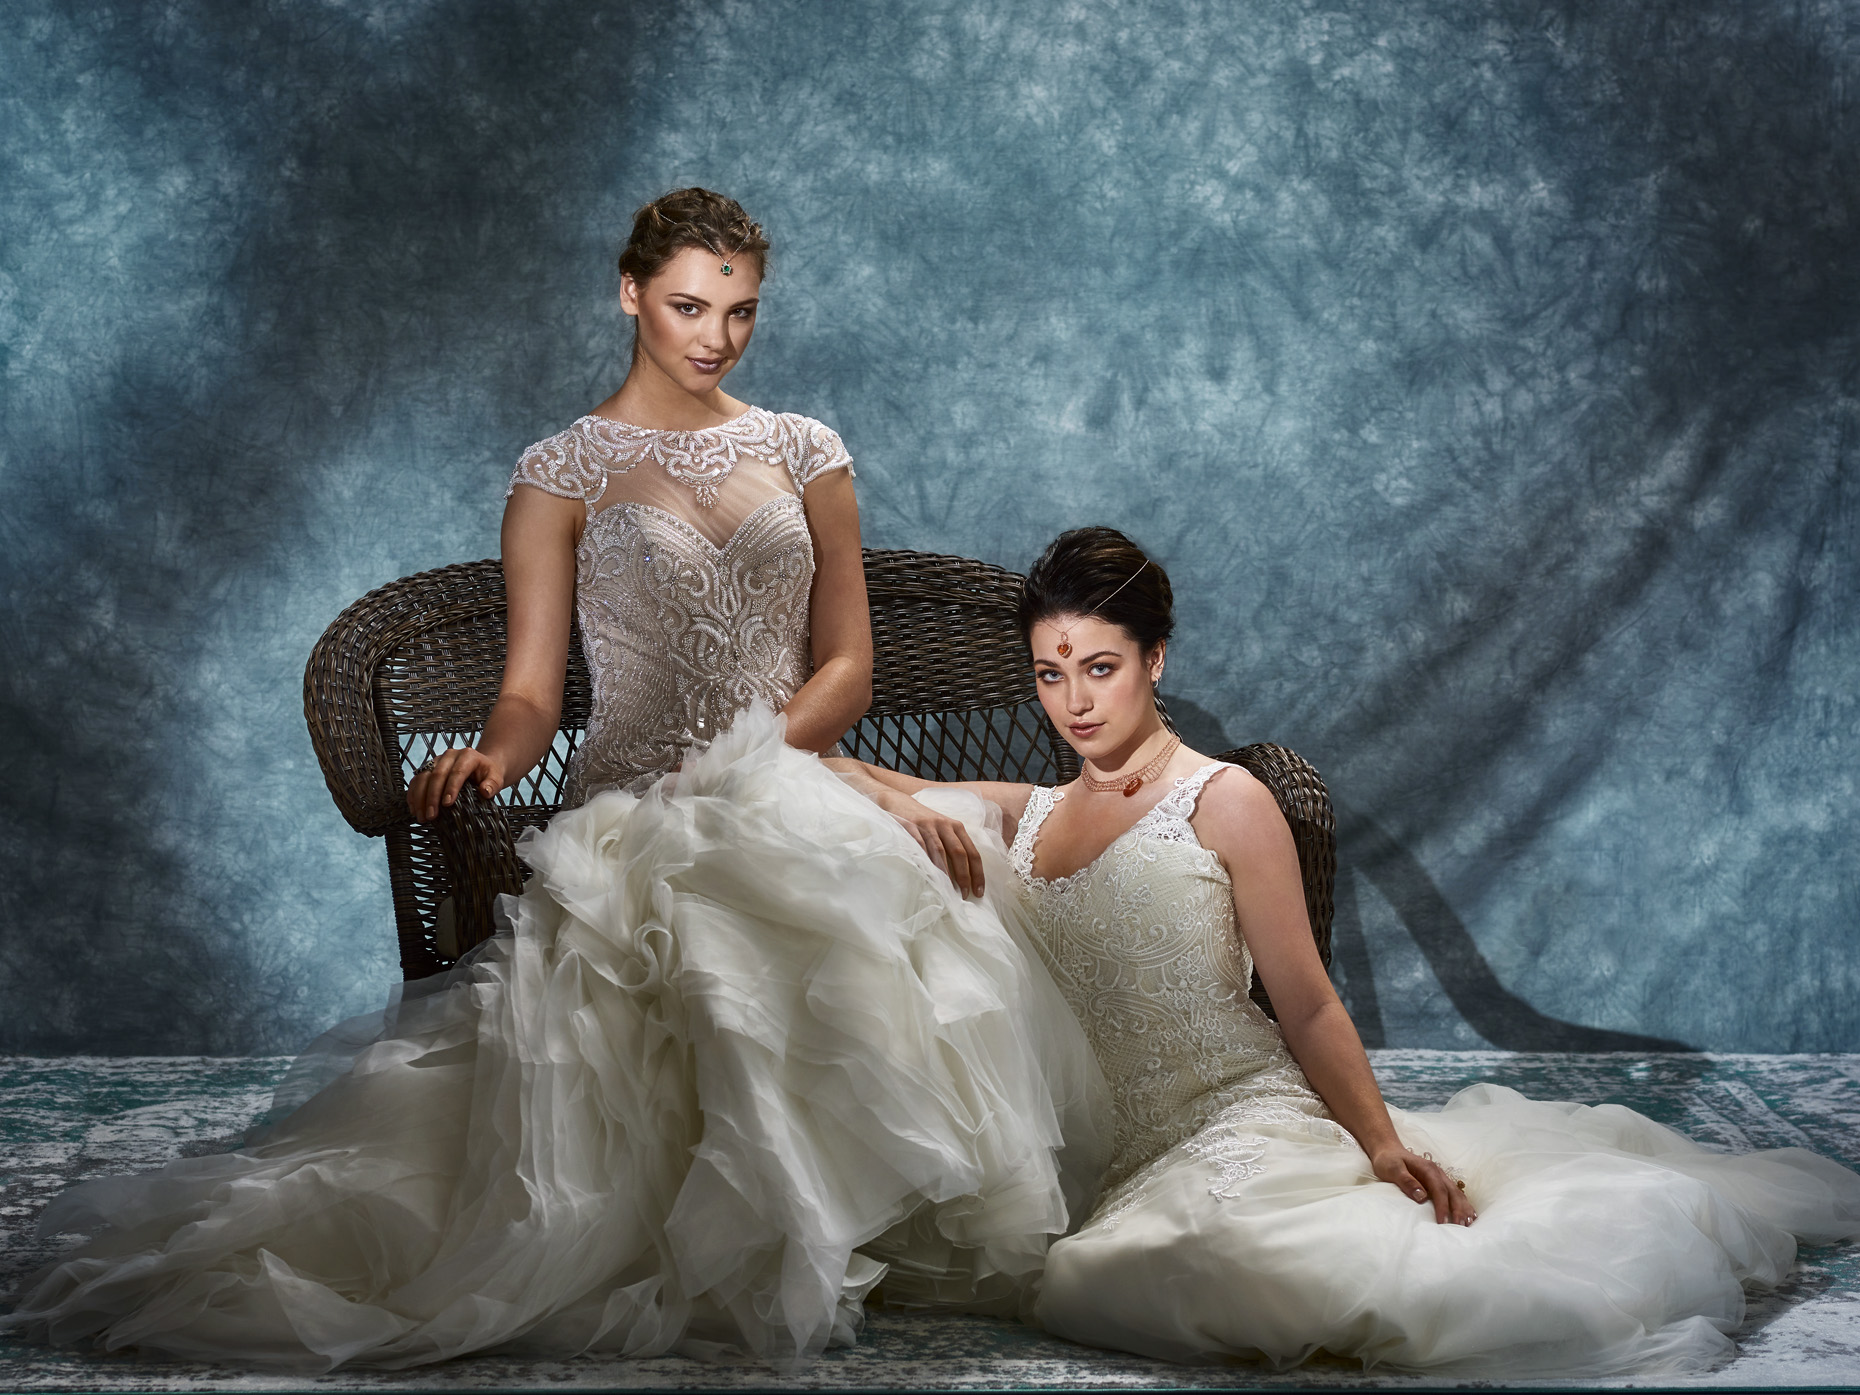 Editorial_Bridal_Fashion_02